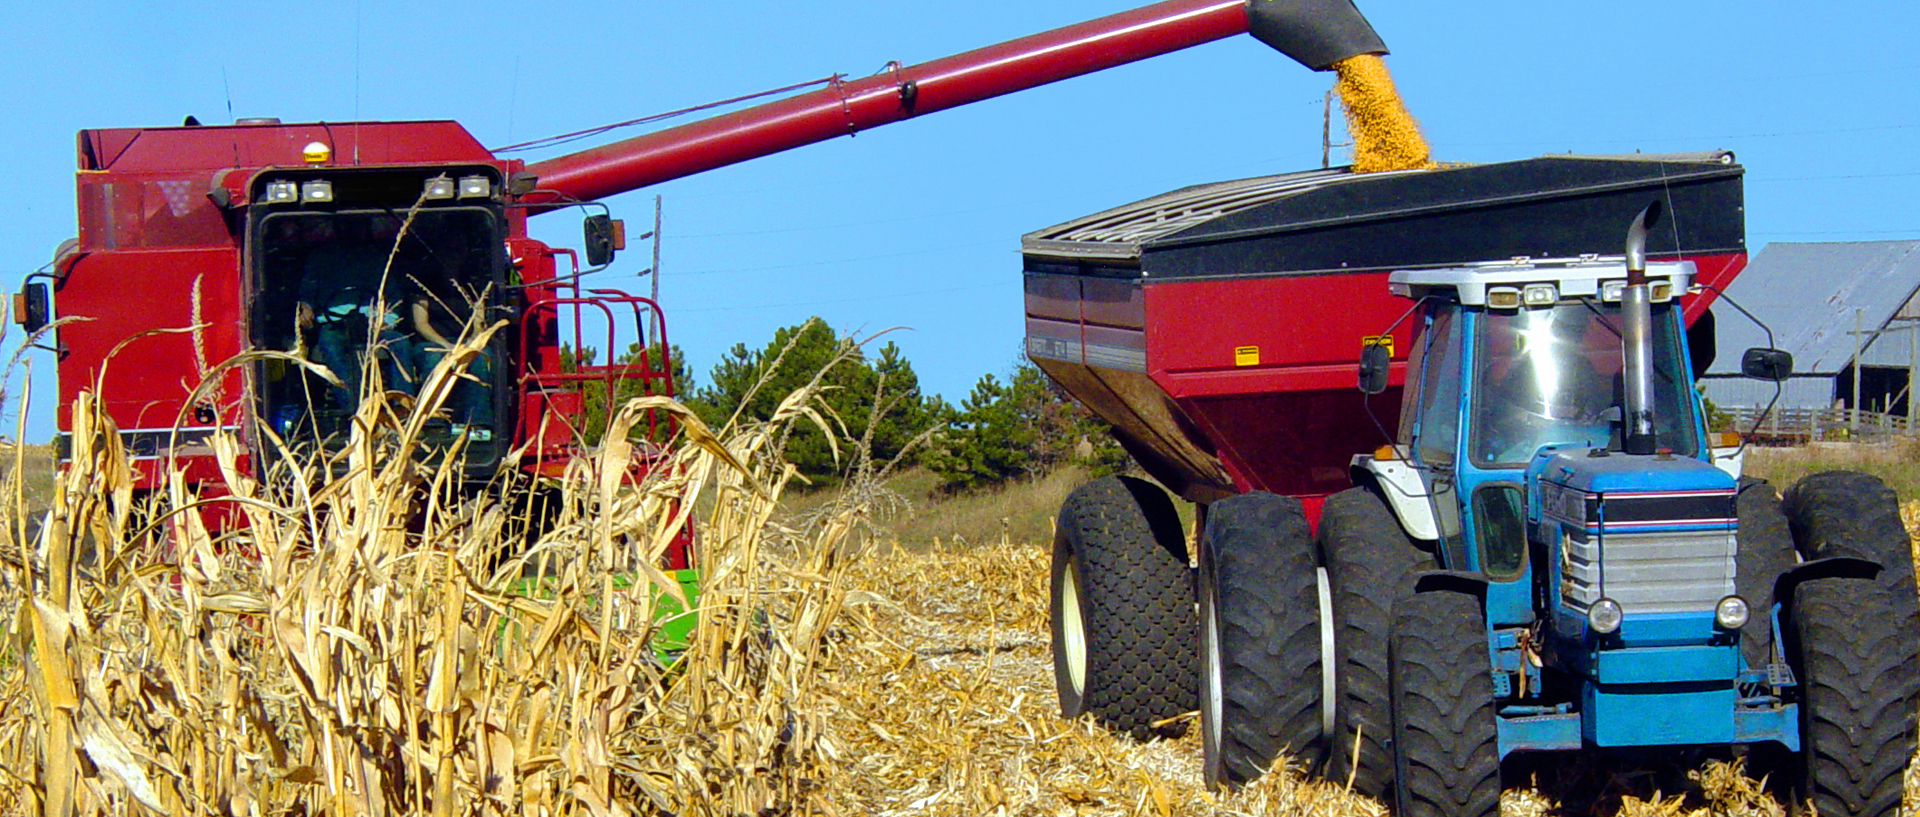 Scientists Raise Concerns Over Weed Killer Glyphosate in New Study